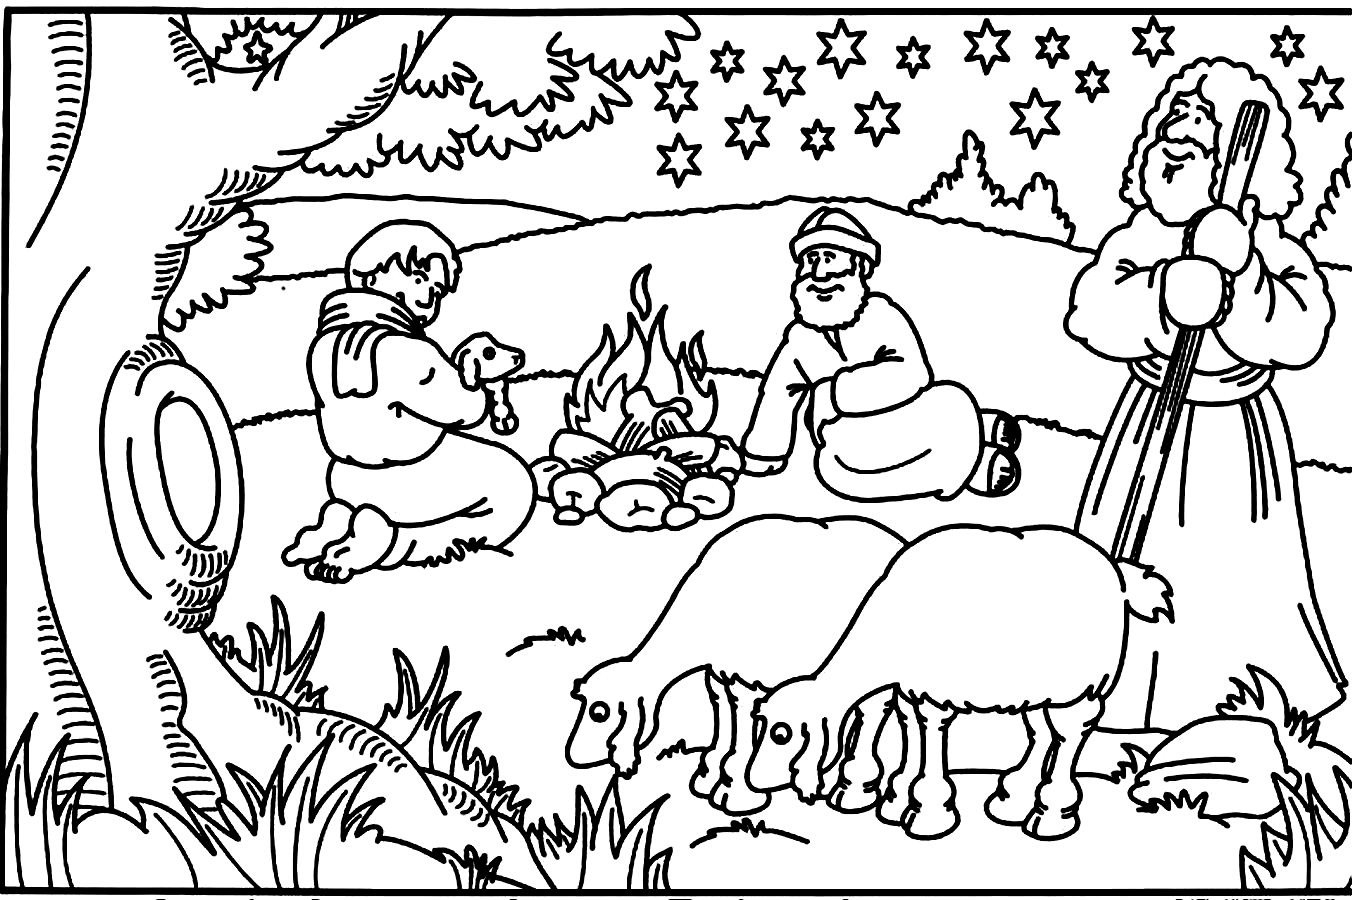 jesus bible story coloring pages - photo#29